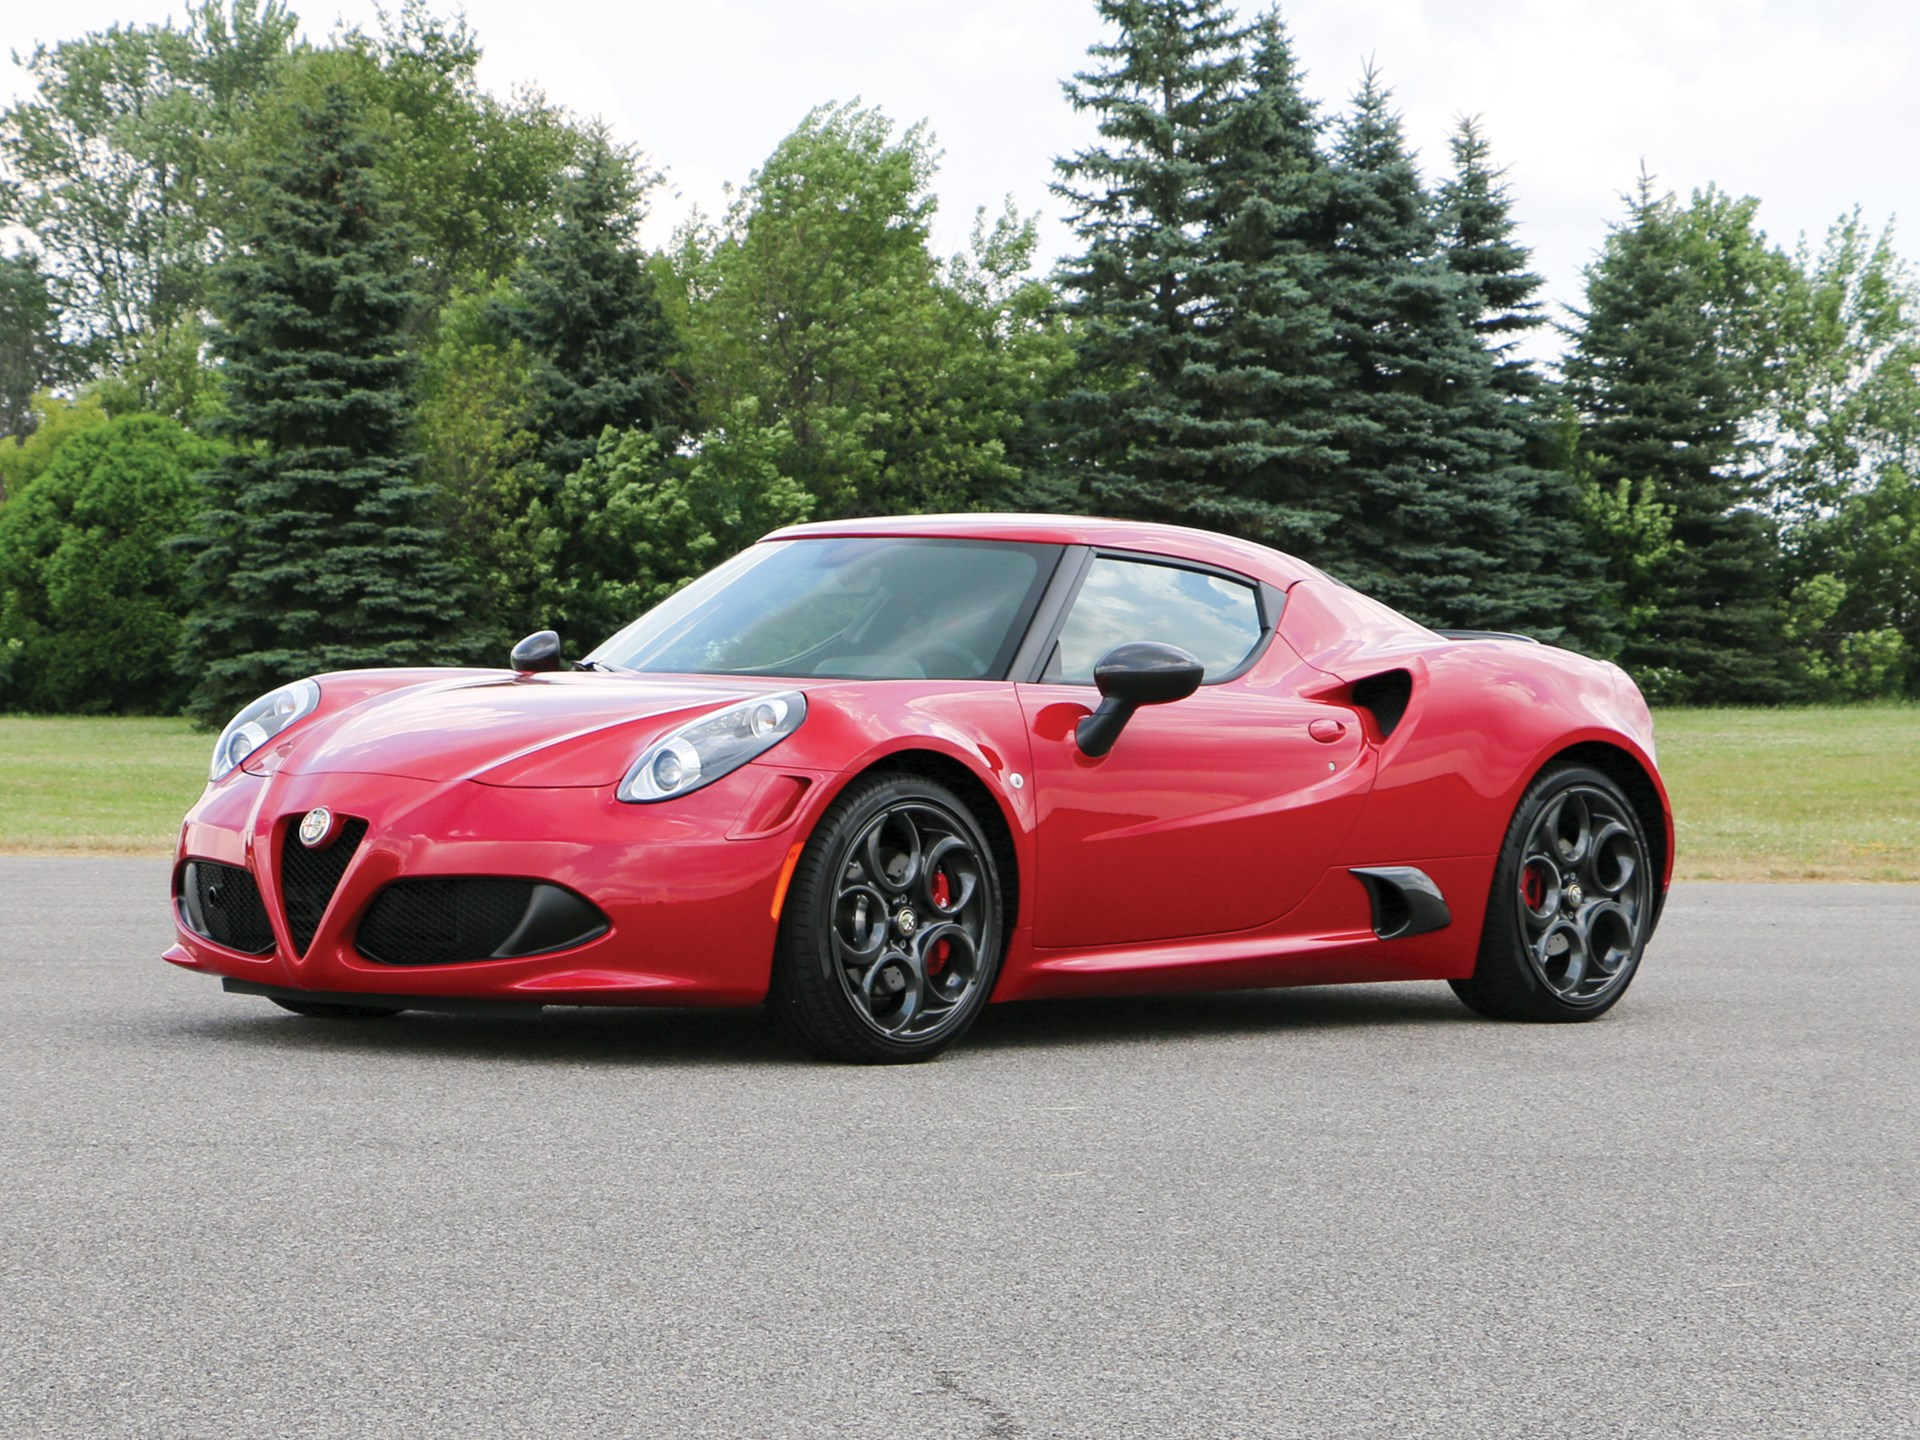 rm sotheby 39 s 2015 alfa romeo 4c launch edition auburn fall 2018. Black Bedroom Furniture Sets. Home Design Ideas